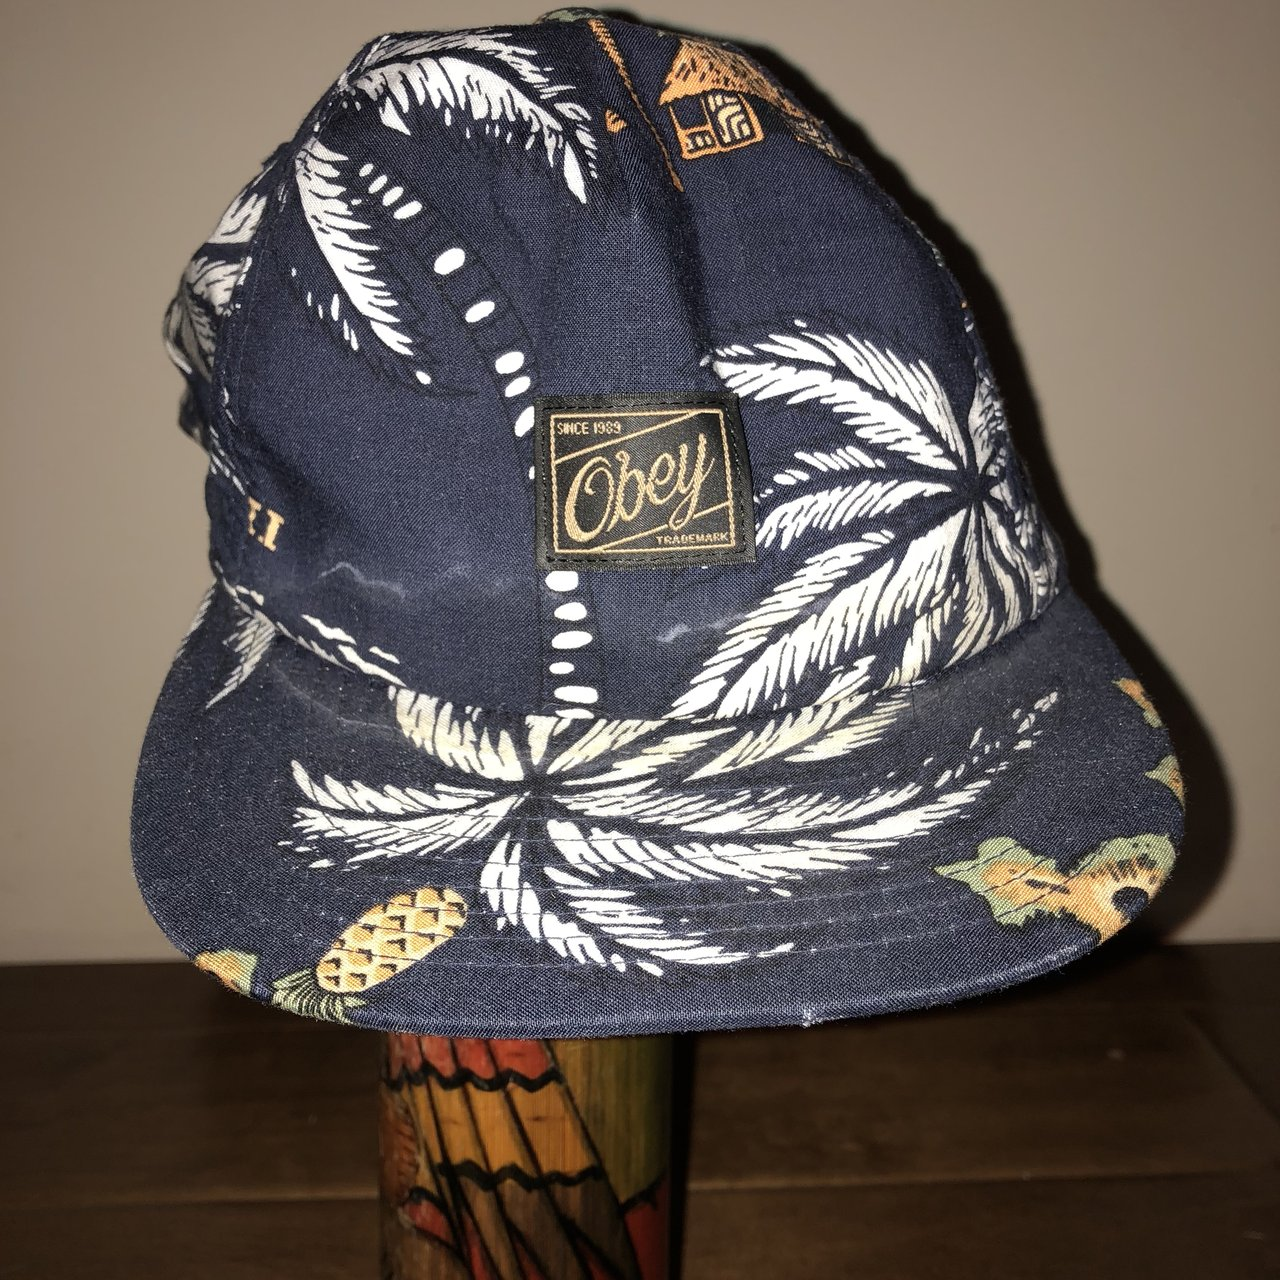 d0308f3dac2 Obey adjustable surf hat!! Sick floral tropical design. hat - Depop